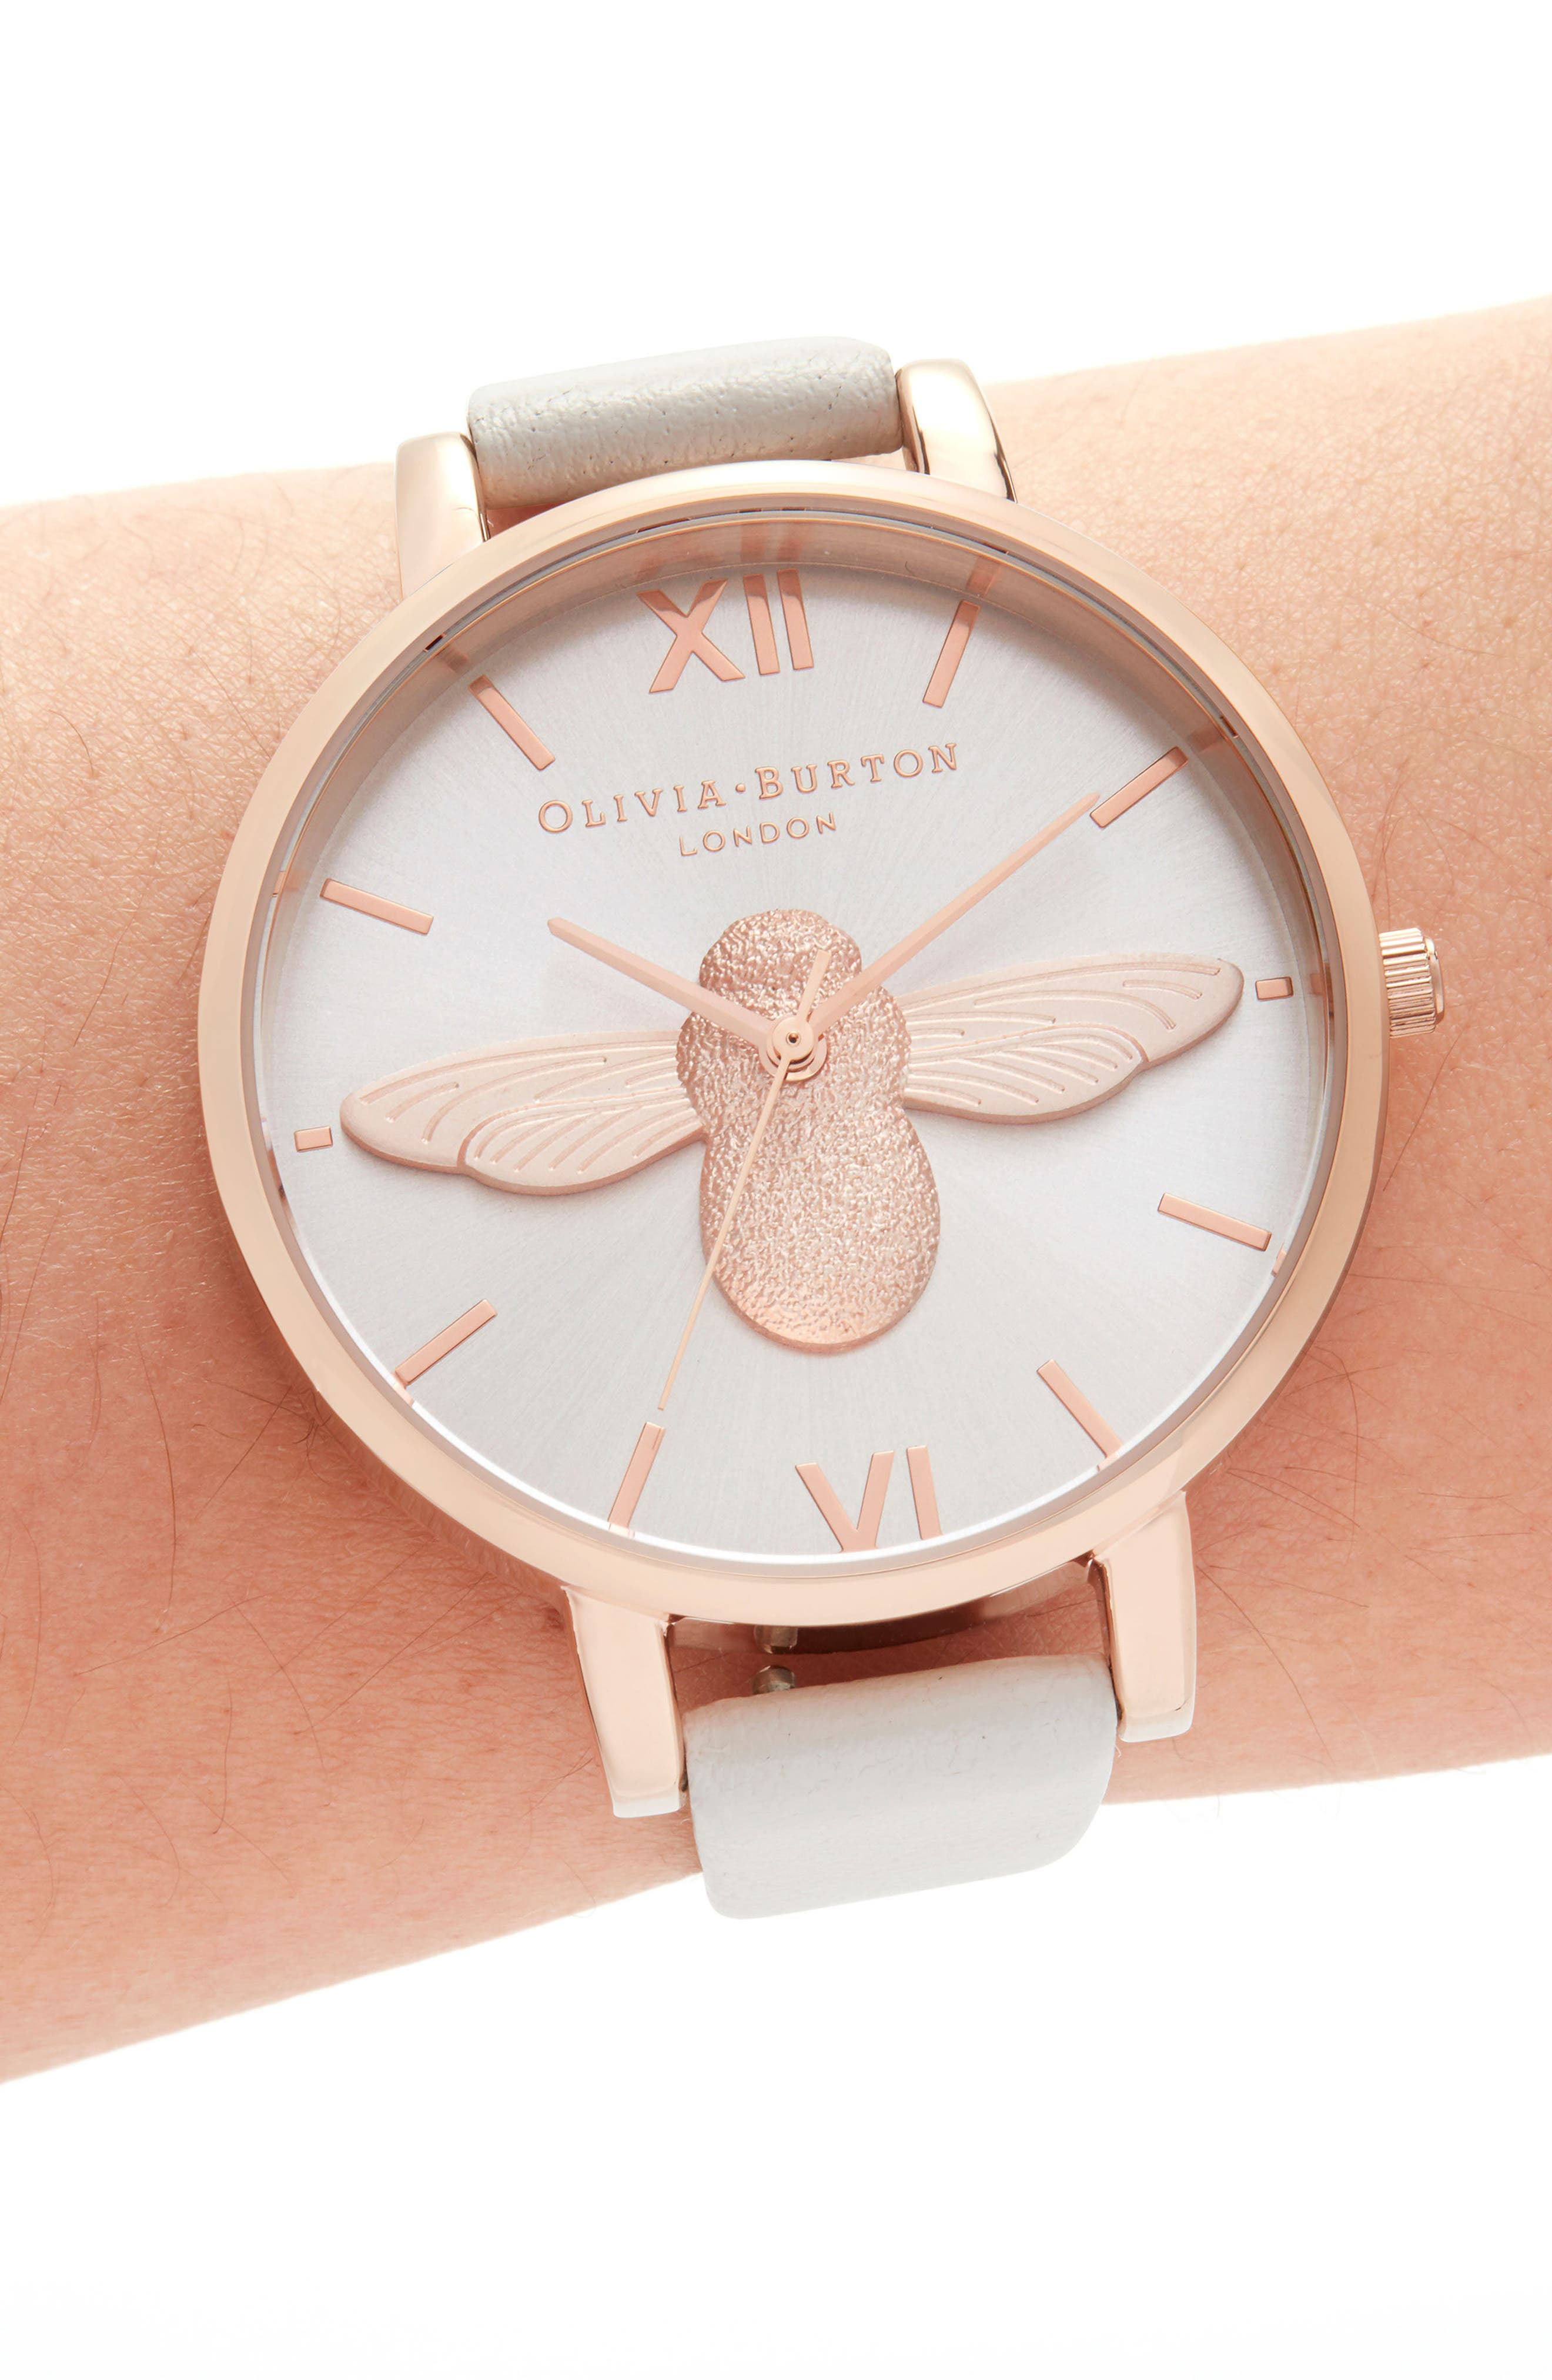 OLIVIA BURTON, 'Molded Bee' Leather Strap Watch, 38mm, Alternate thumbnail 2, color, BLUSH/ SUNRAY BEE/ ROSE GOLD